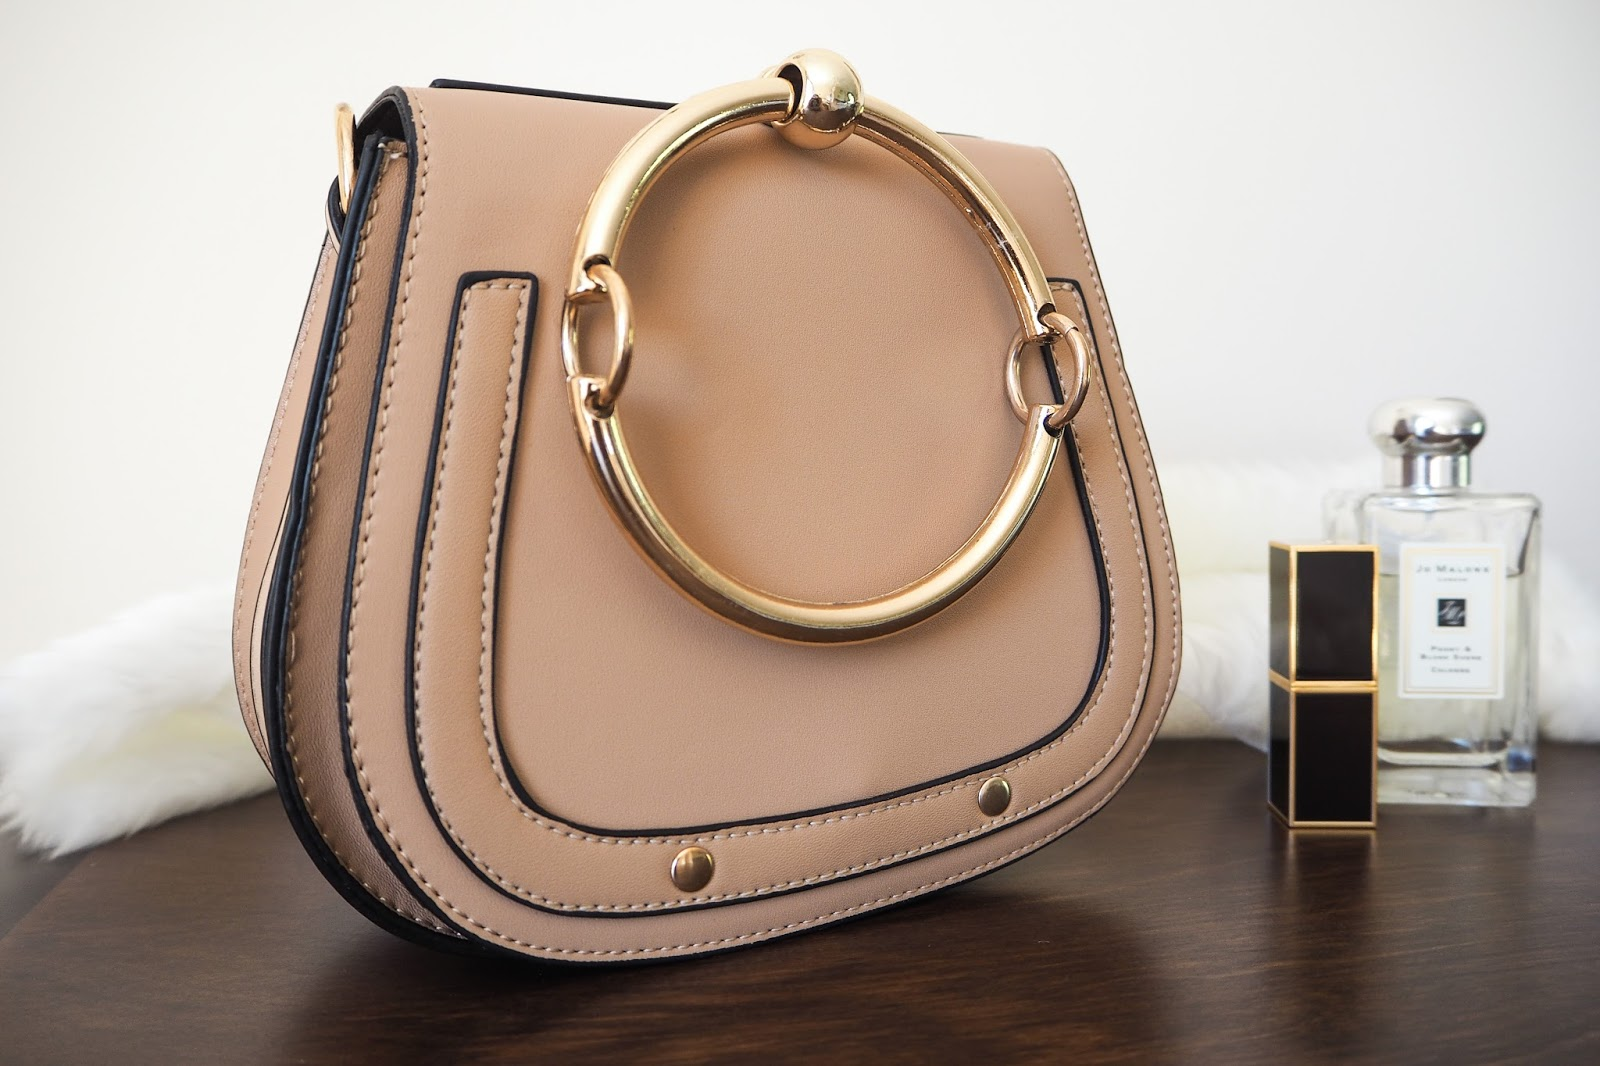 Beige handbag which is a dupe of the Chloe Nile